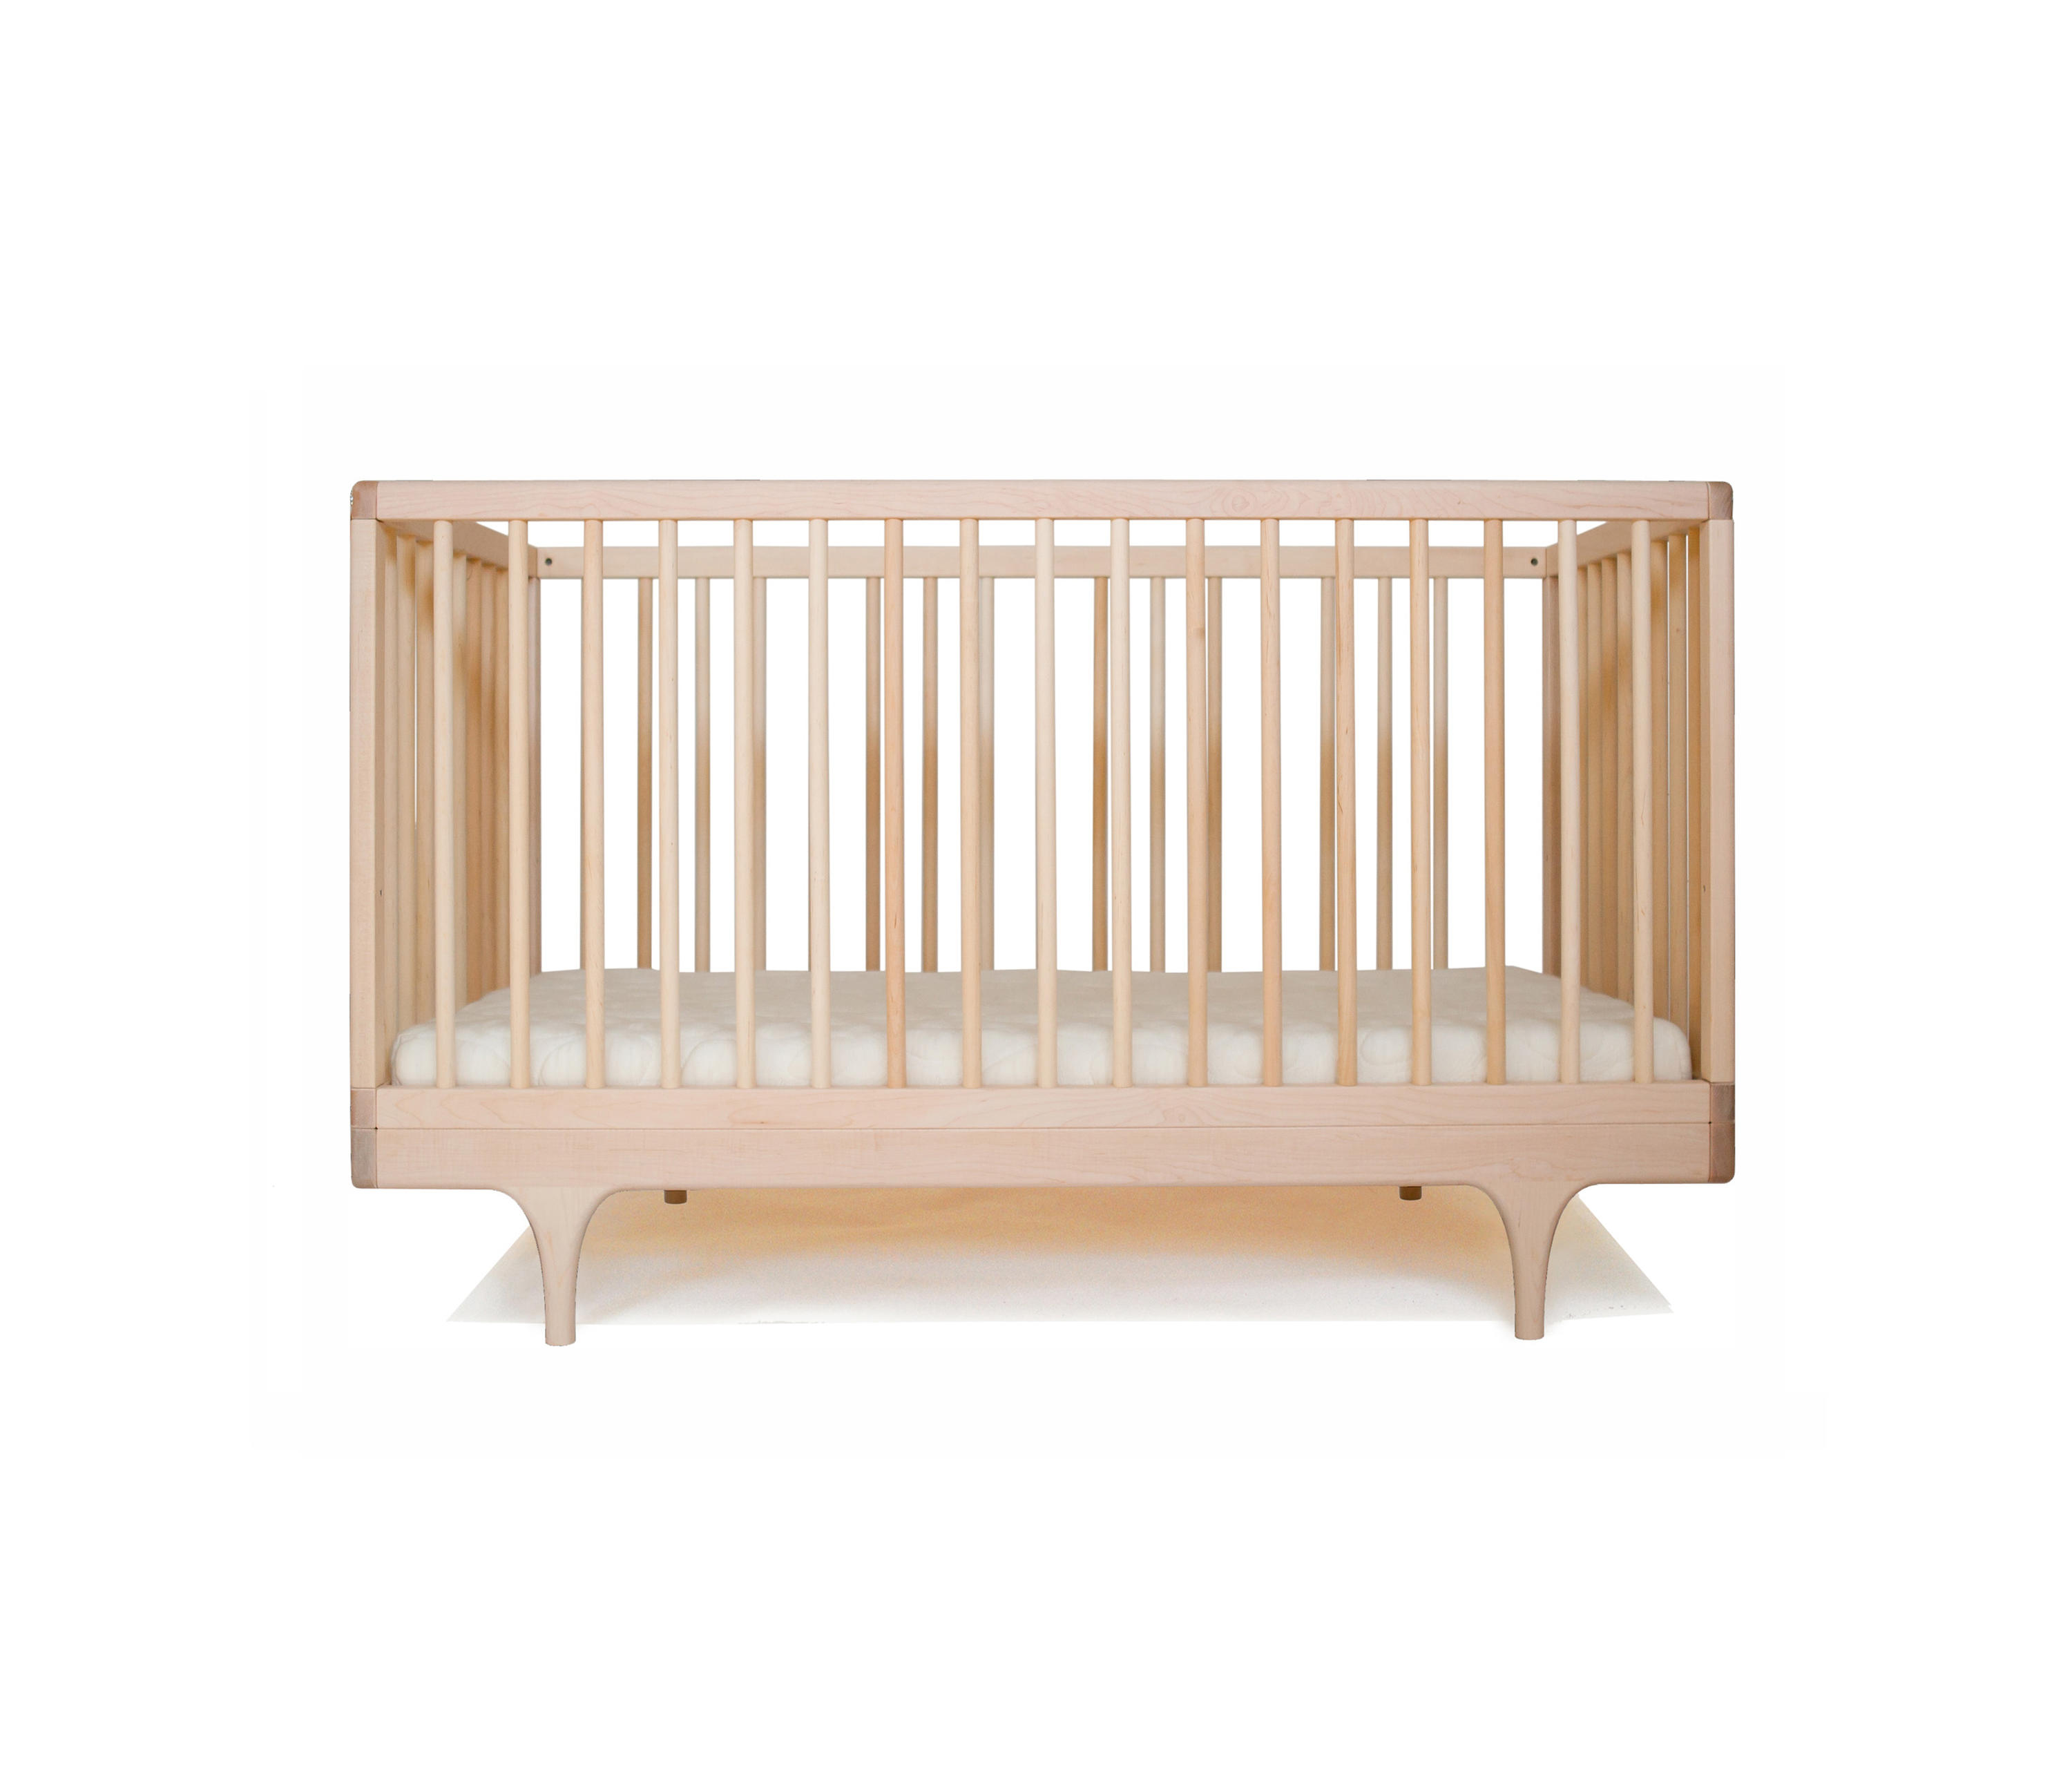 CARAVAN CRIB - Infant\'s beds from De Breuyn | Architonic